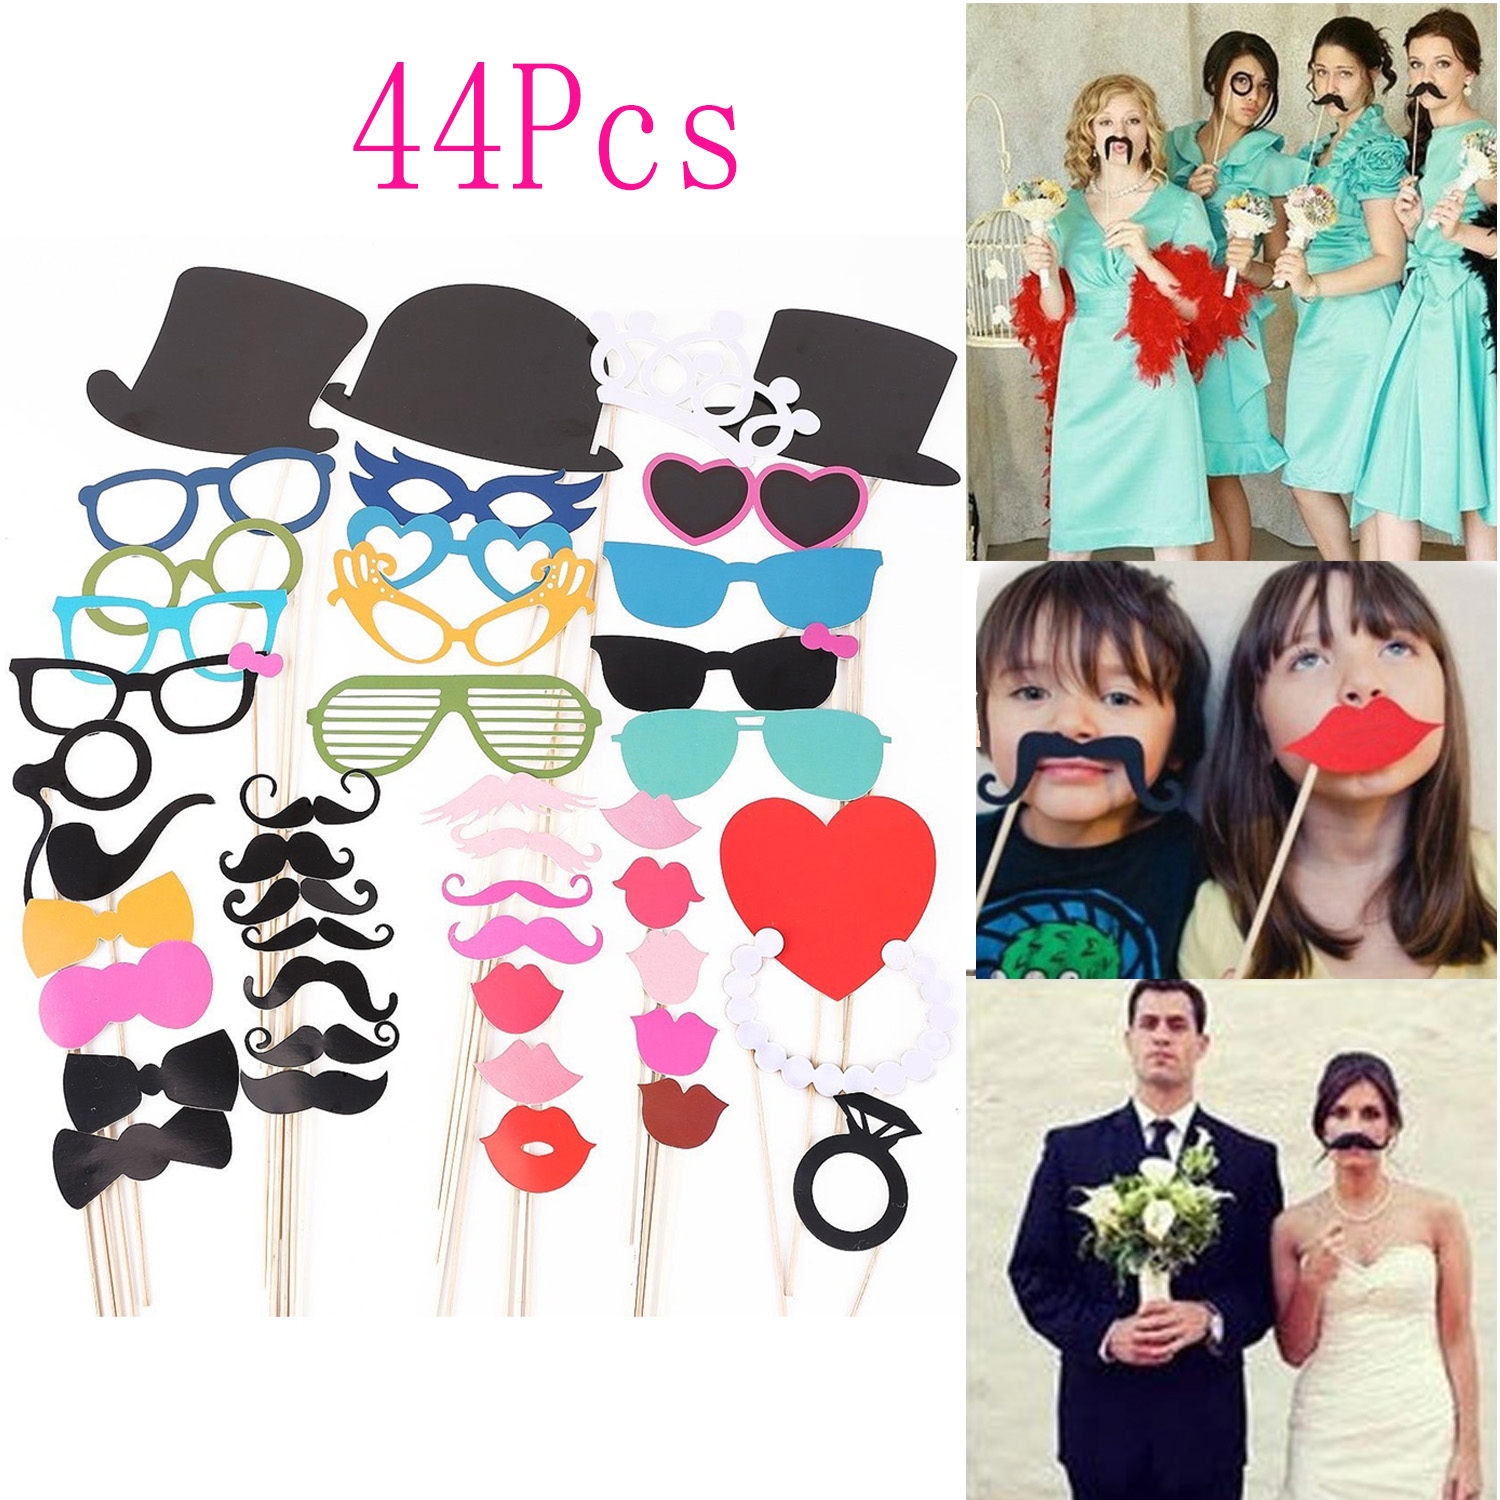 Satkago 44Pcs DIY Photo Booth Photography Props Mustache Glasses Lips Caps On A Stick for Happy Fun Wedding Birthday Party